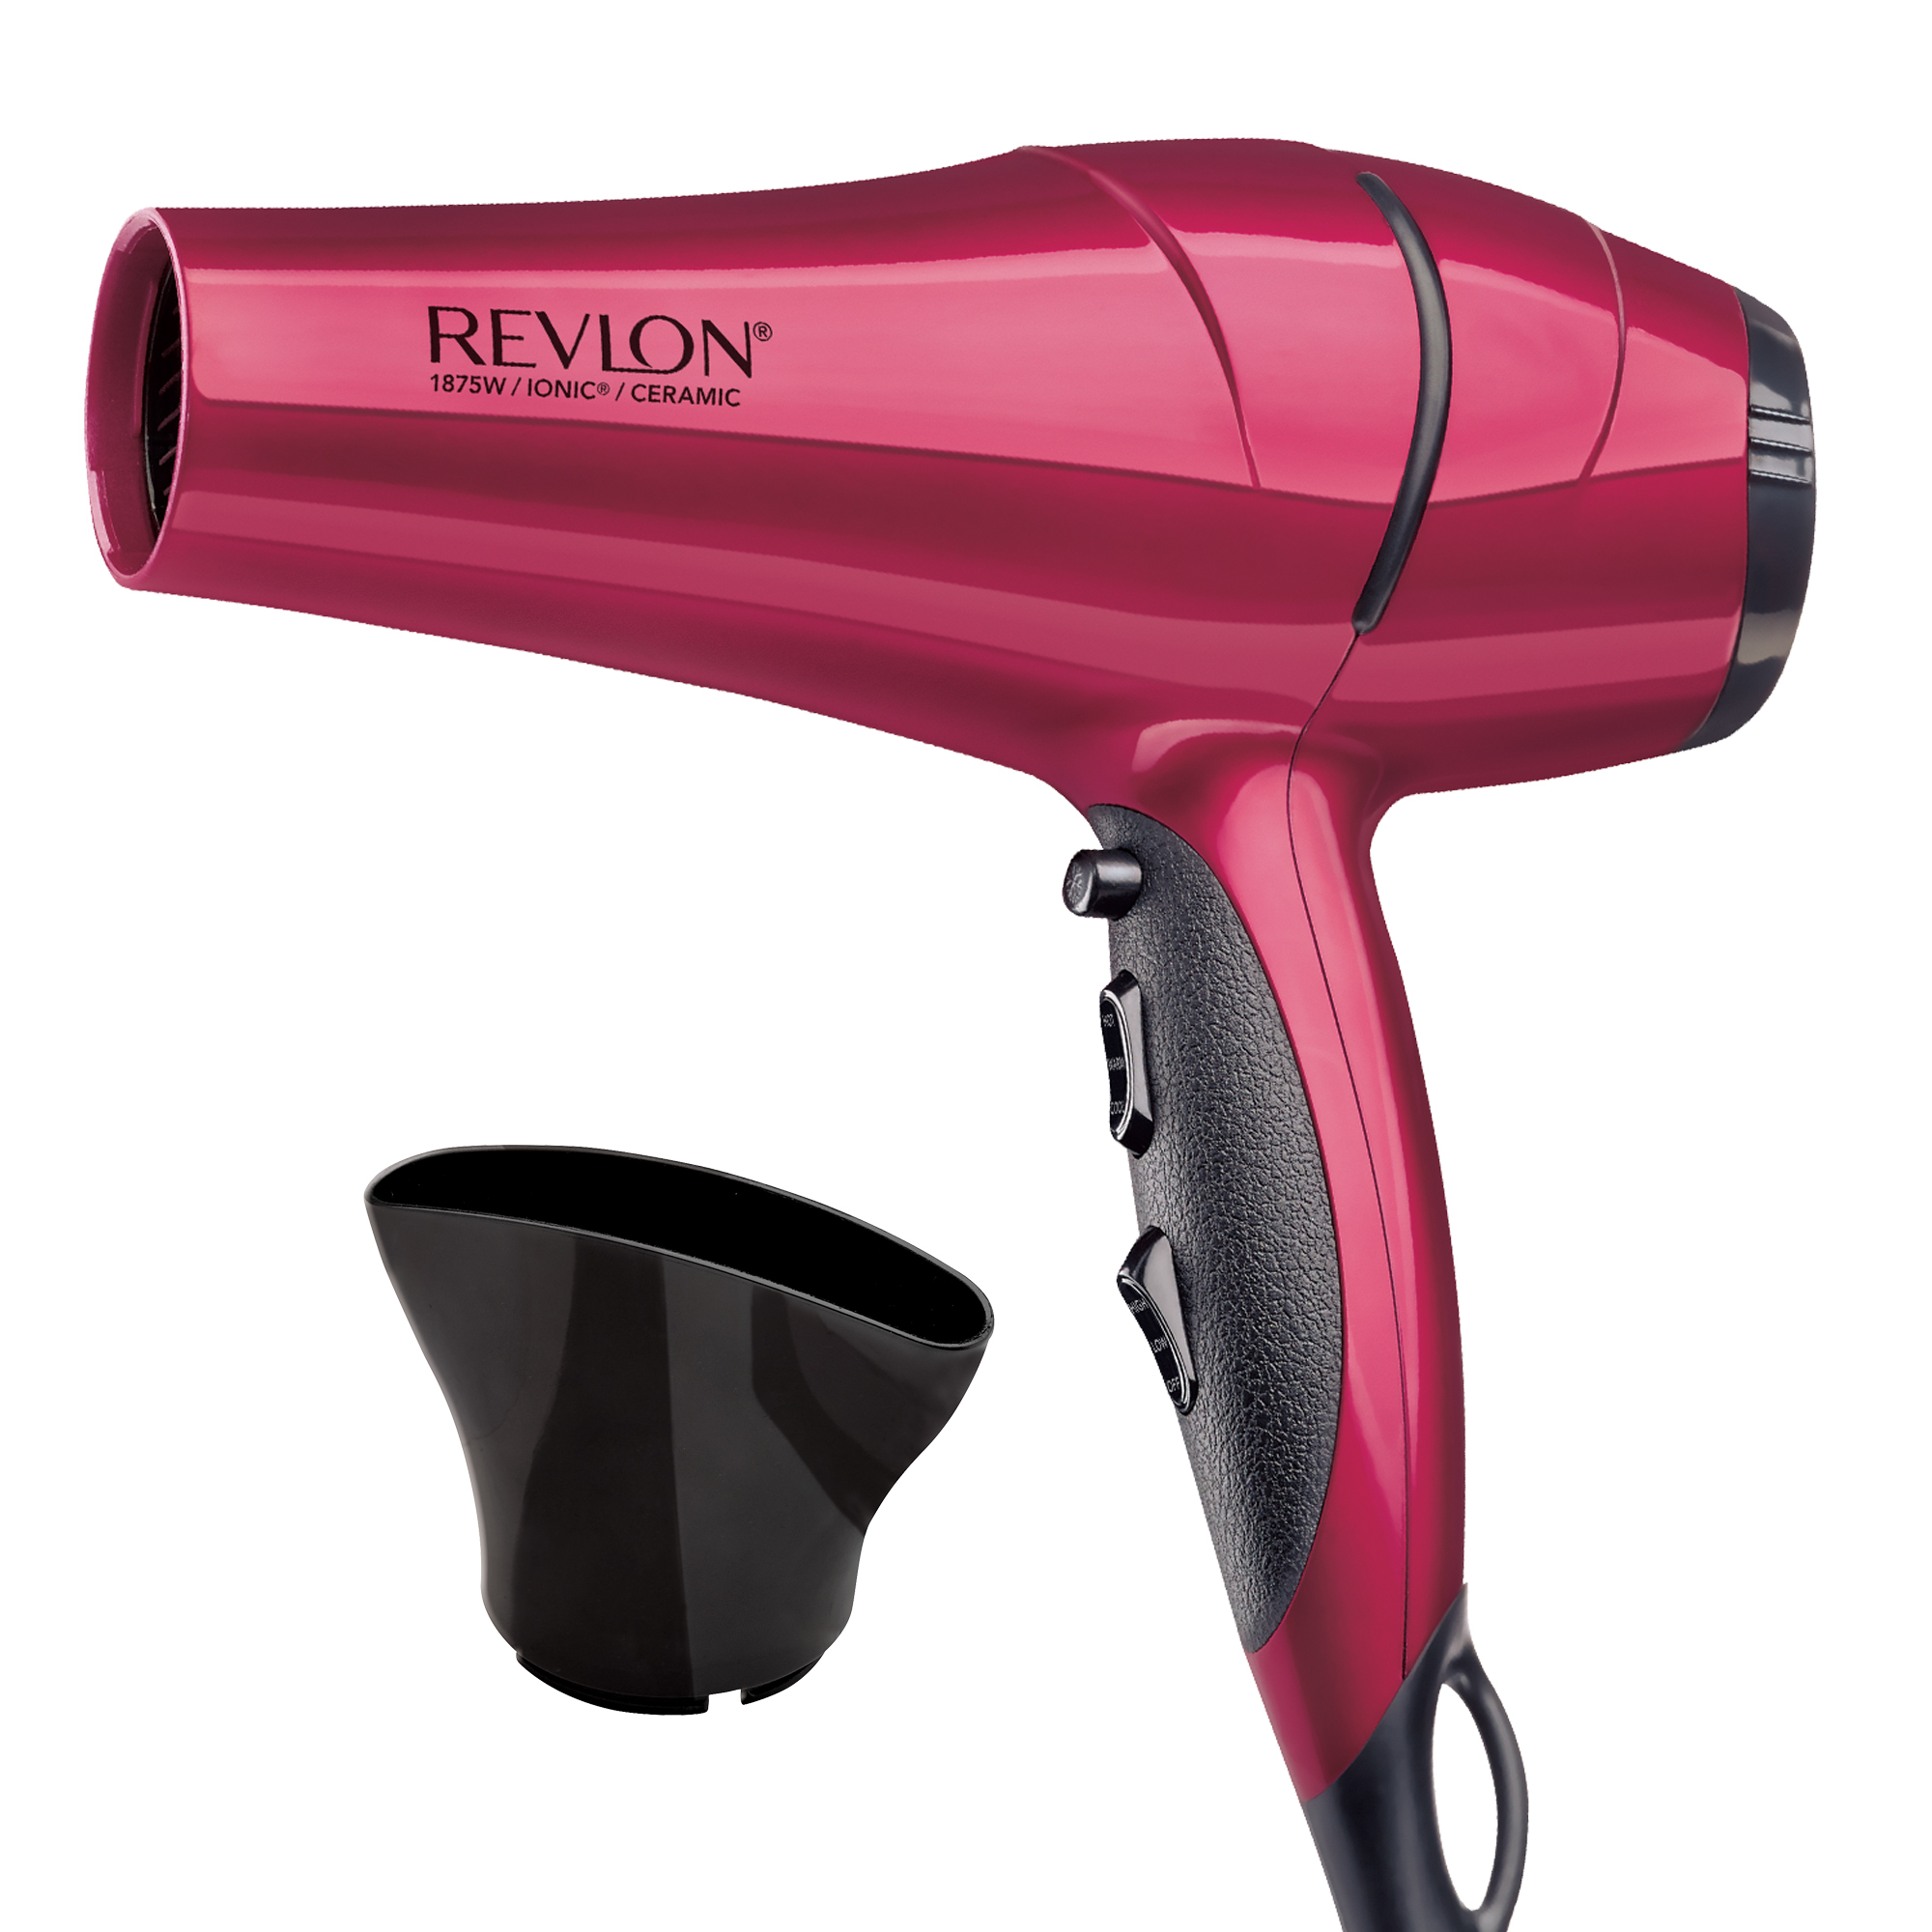 Revlon Perfect Heat® Frizz Fighter RVDR5191 Ionic Hair Dryer, Red with Concentrator